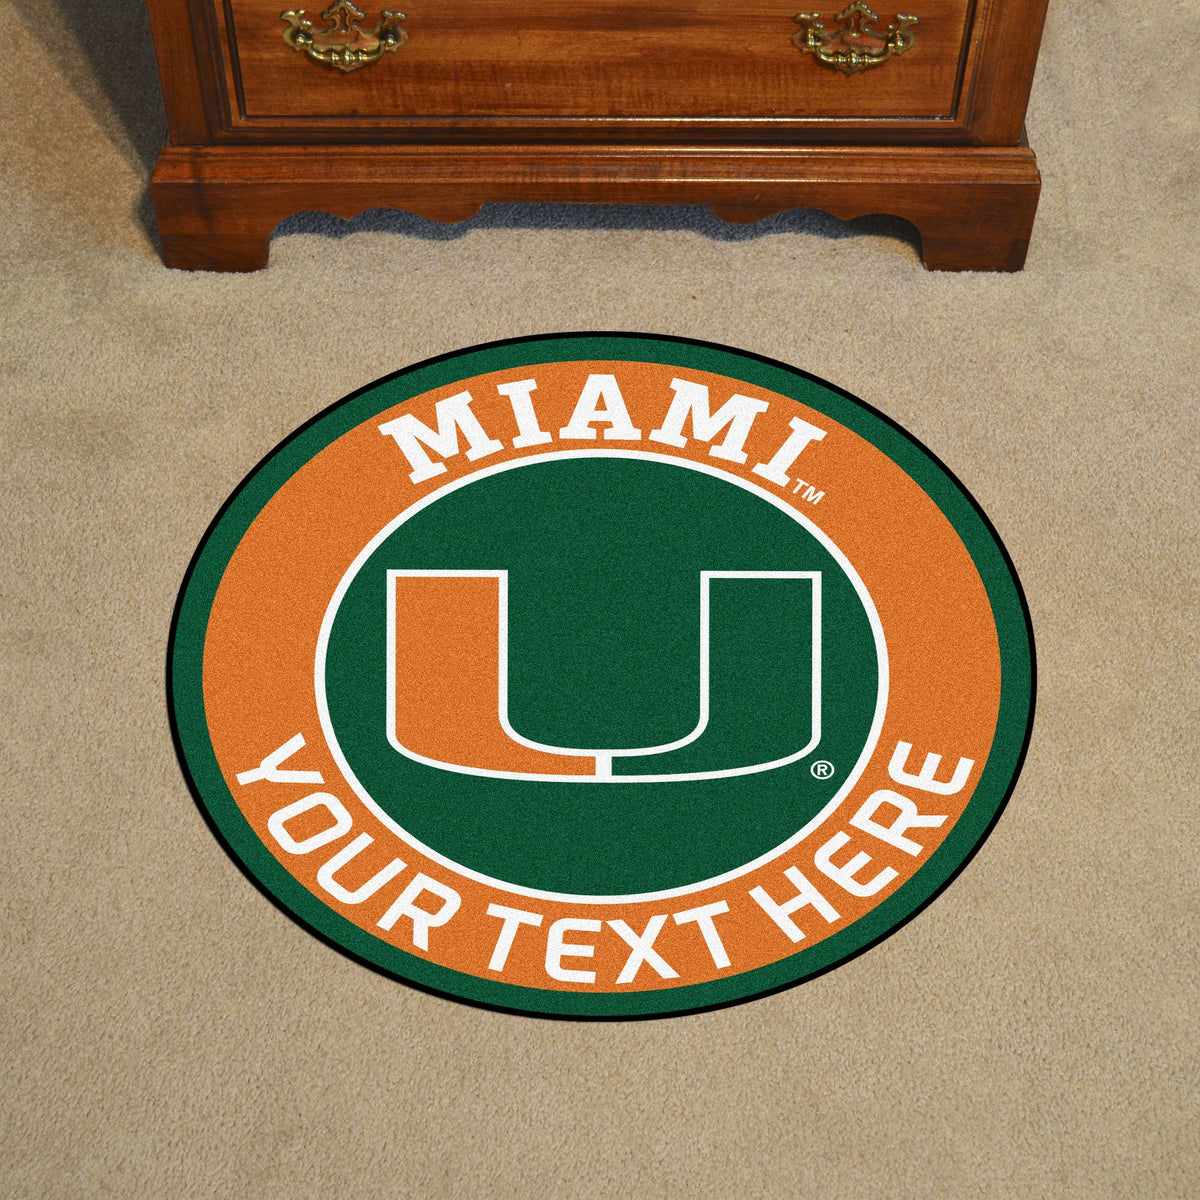 Collegiate Personalized Roundel Mat Personalized Roundel Mat Fan Mats University of Miami